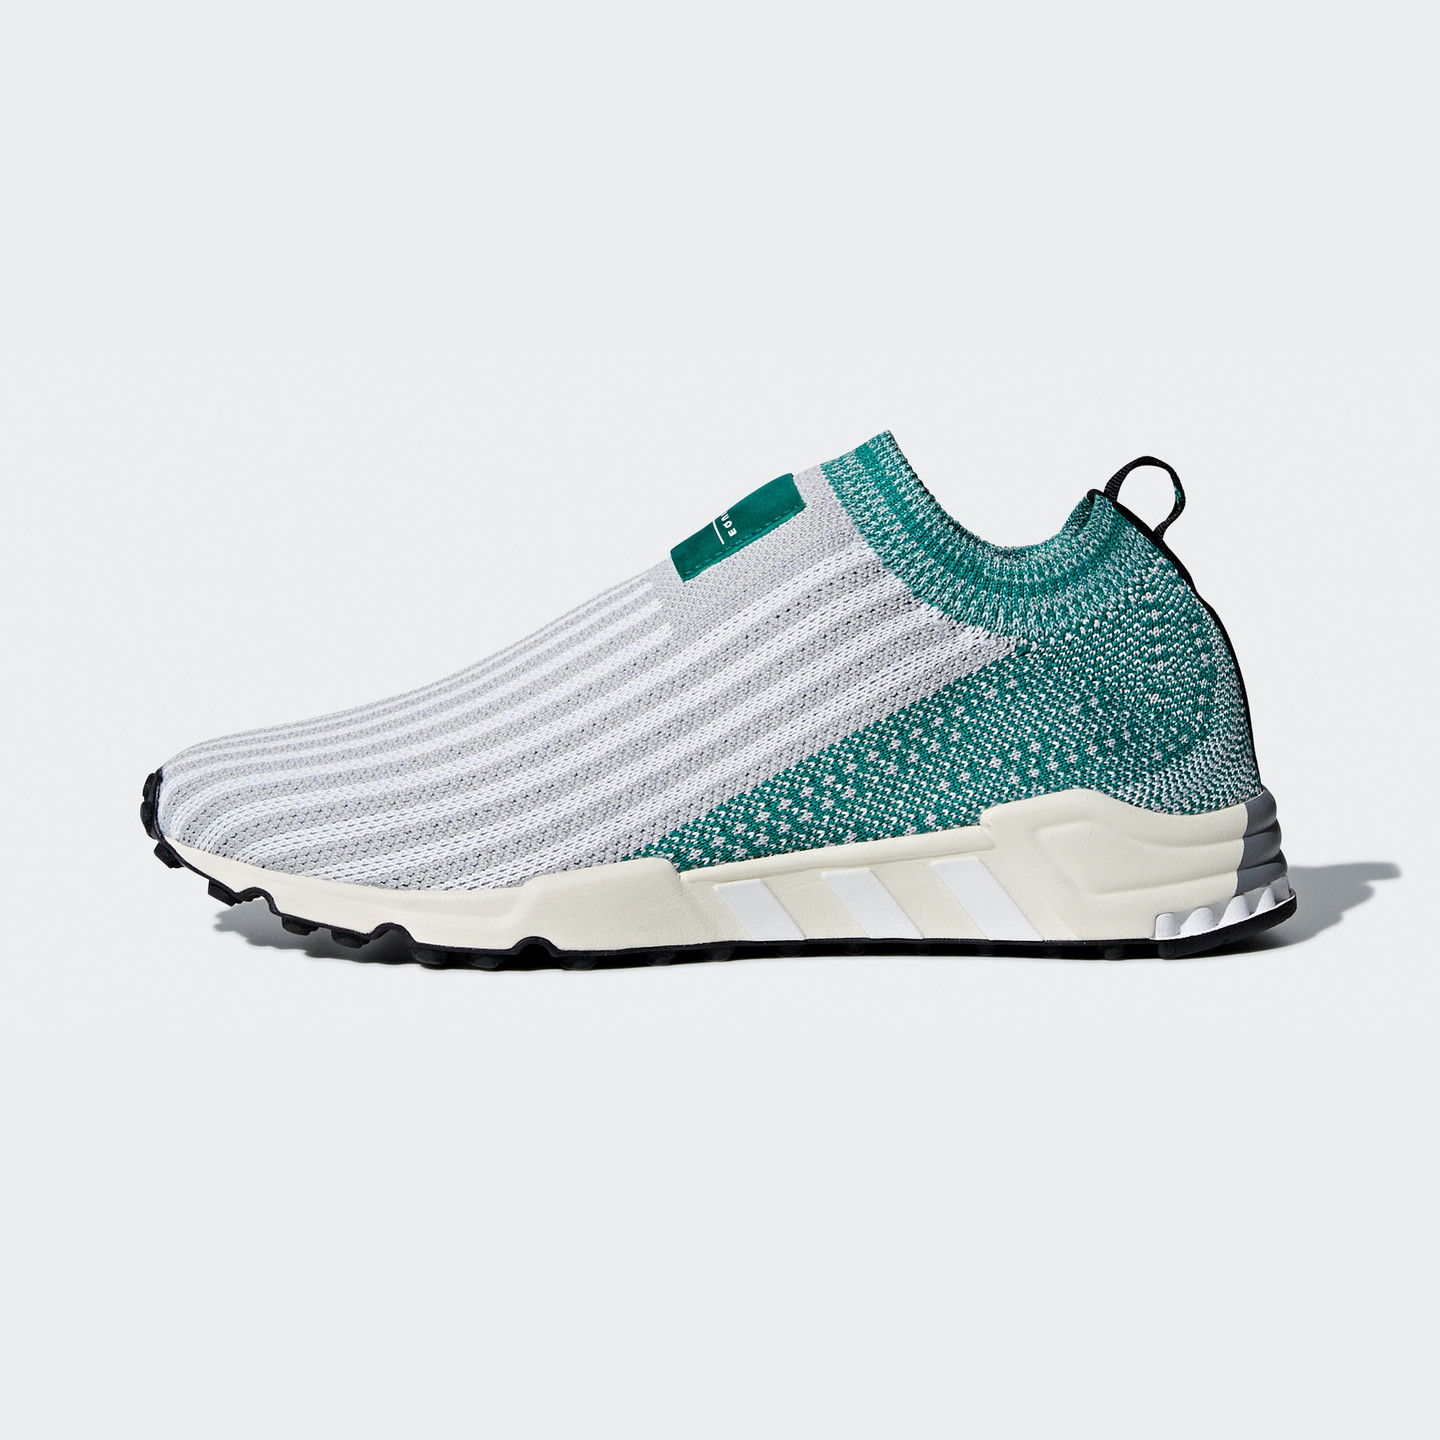 Adidas EQT Support Sk Primeknit Grey Two / Ftwr White / Sub Green AQ1032